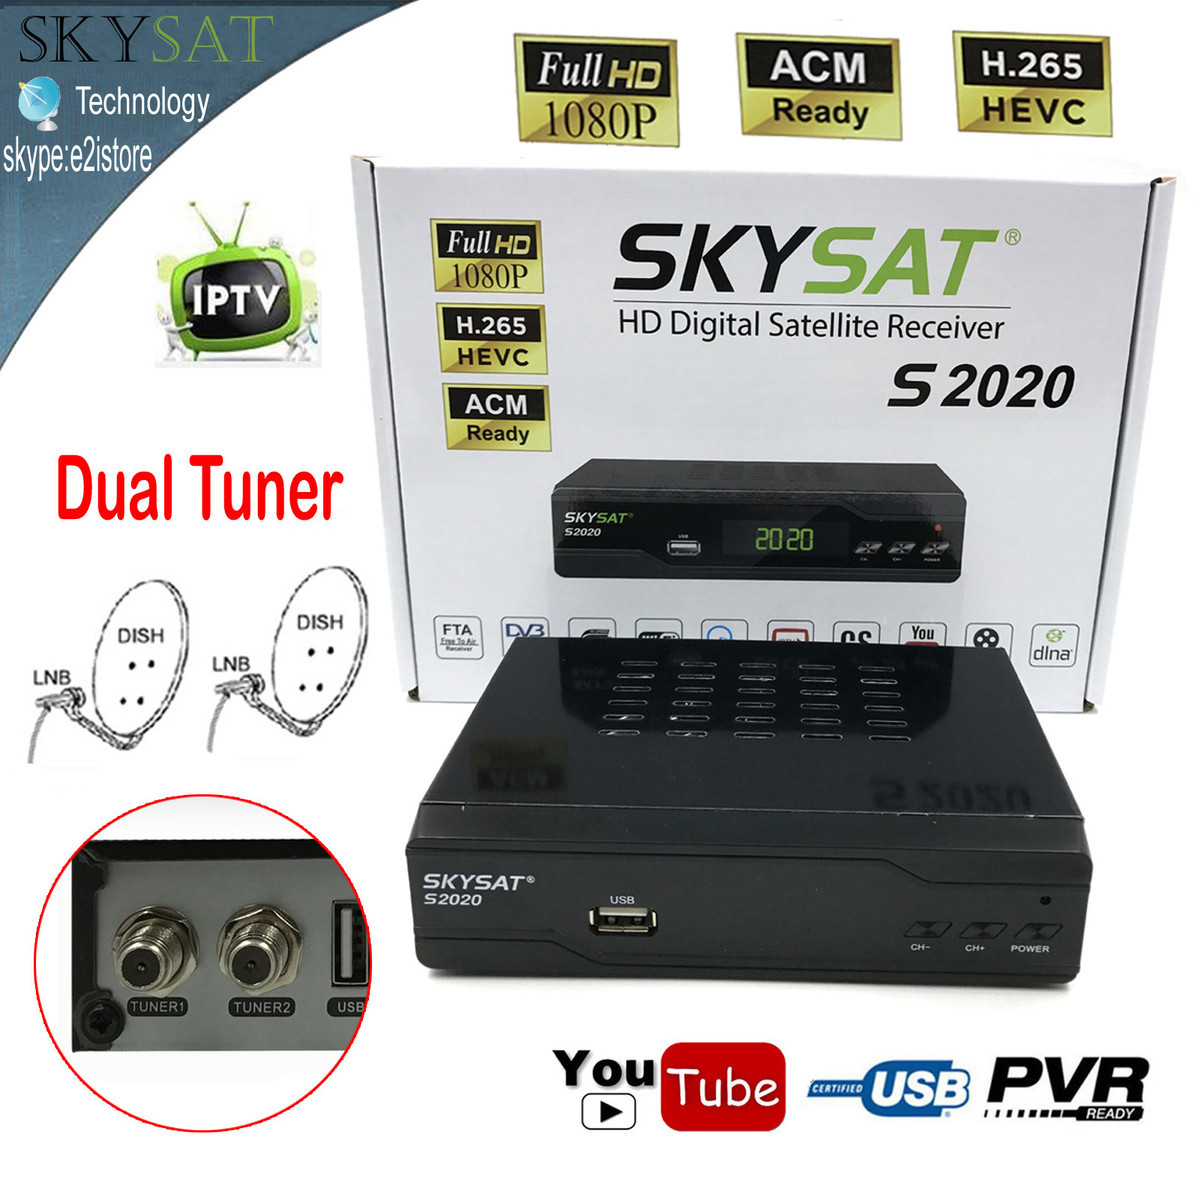 H.265 South America ACM Digital Satellite Receiver Twin Dish Tuner AVC MPEG-4 Support IKS SKS VCM/CCM IPTV with LAN Wifi 2G DDR3 free forever nusky n3gsi nusky n3gst south america satellite receiver with iks sks free better than tocomfree s929 plus